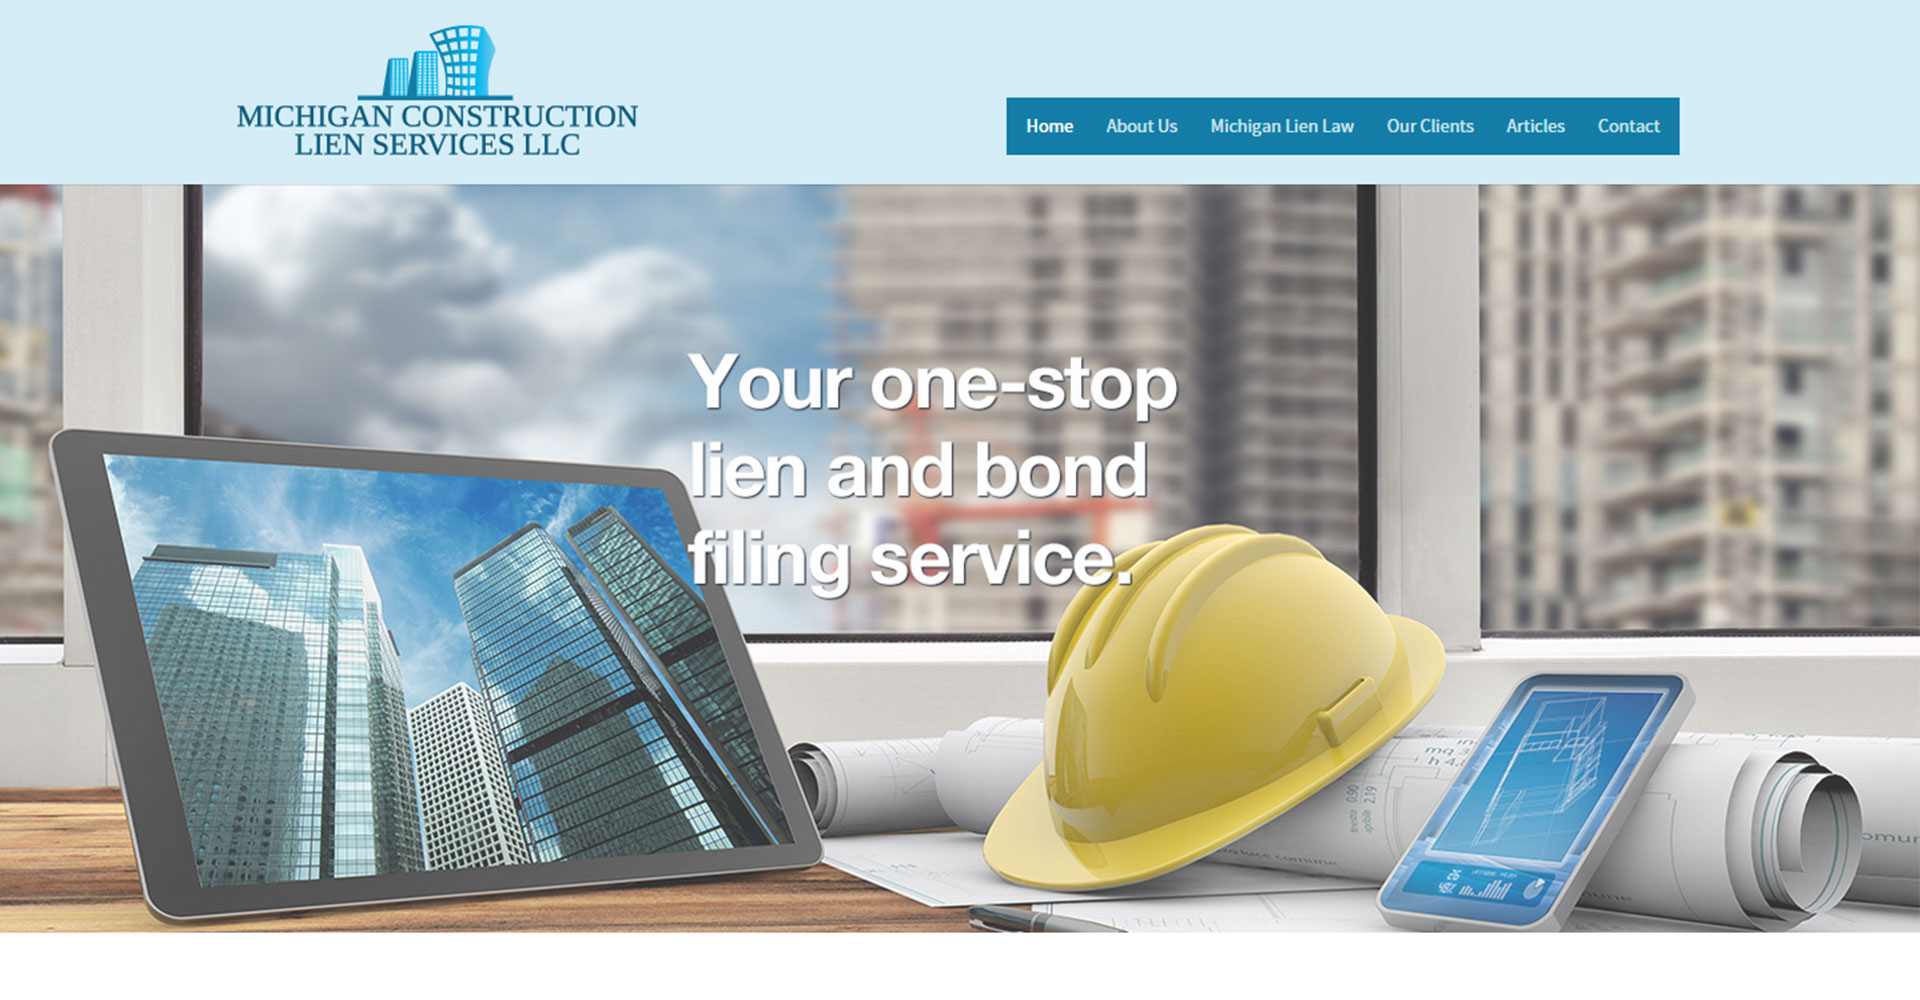 Michigan Construction Lien Services - Zoda Design